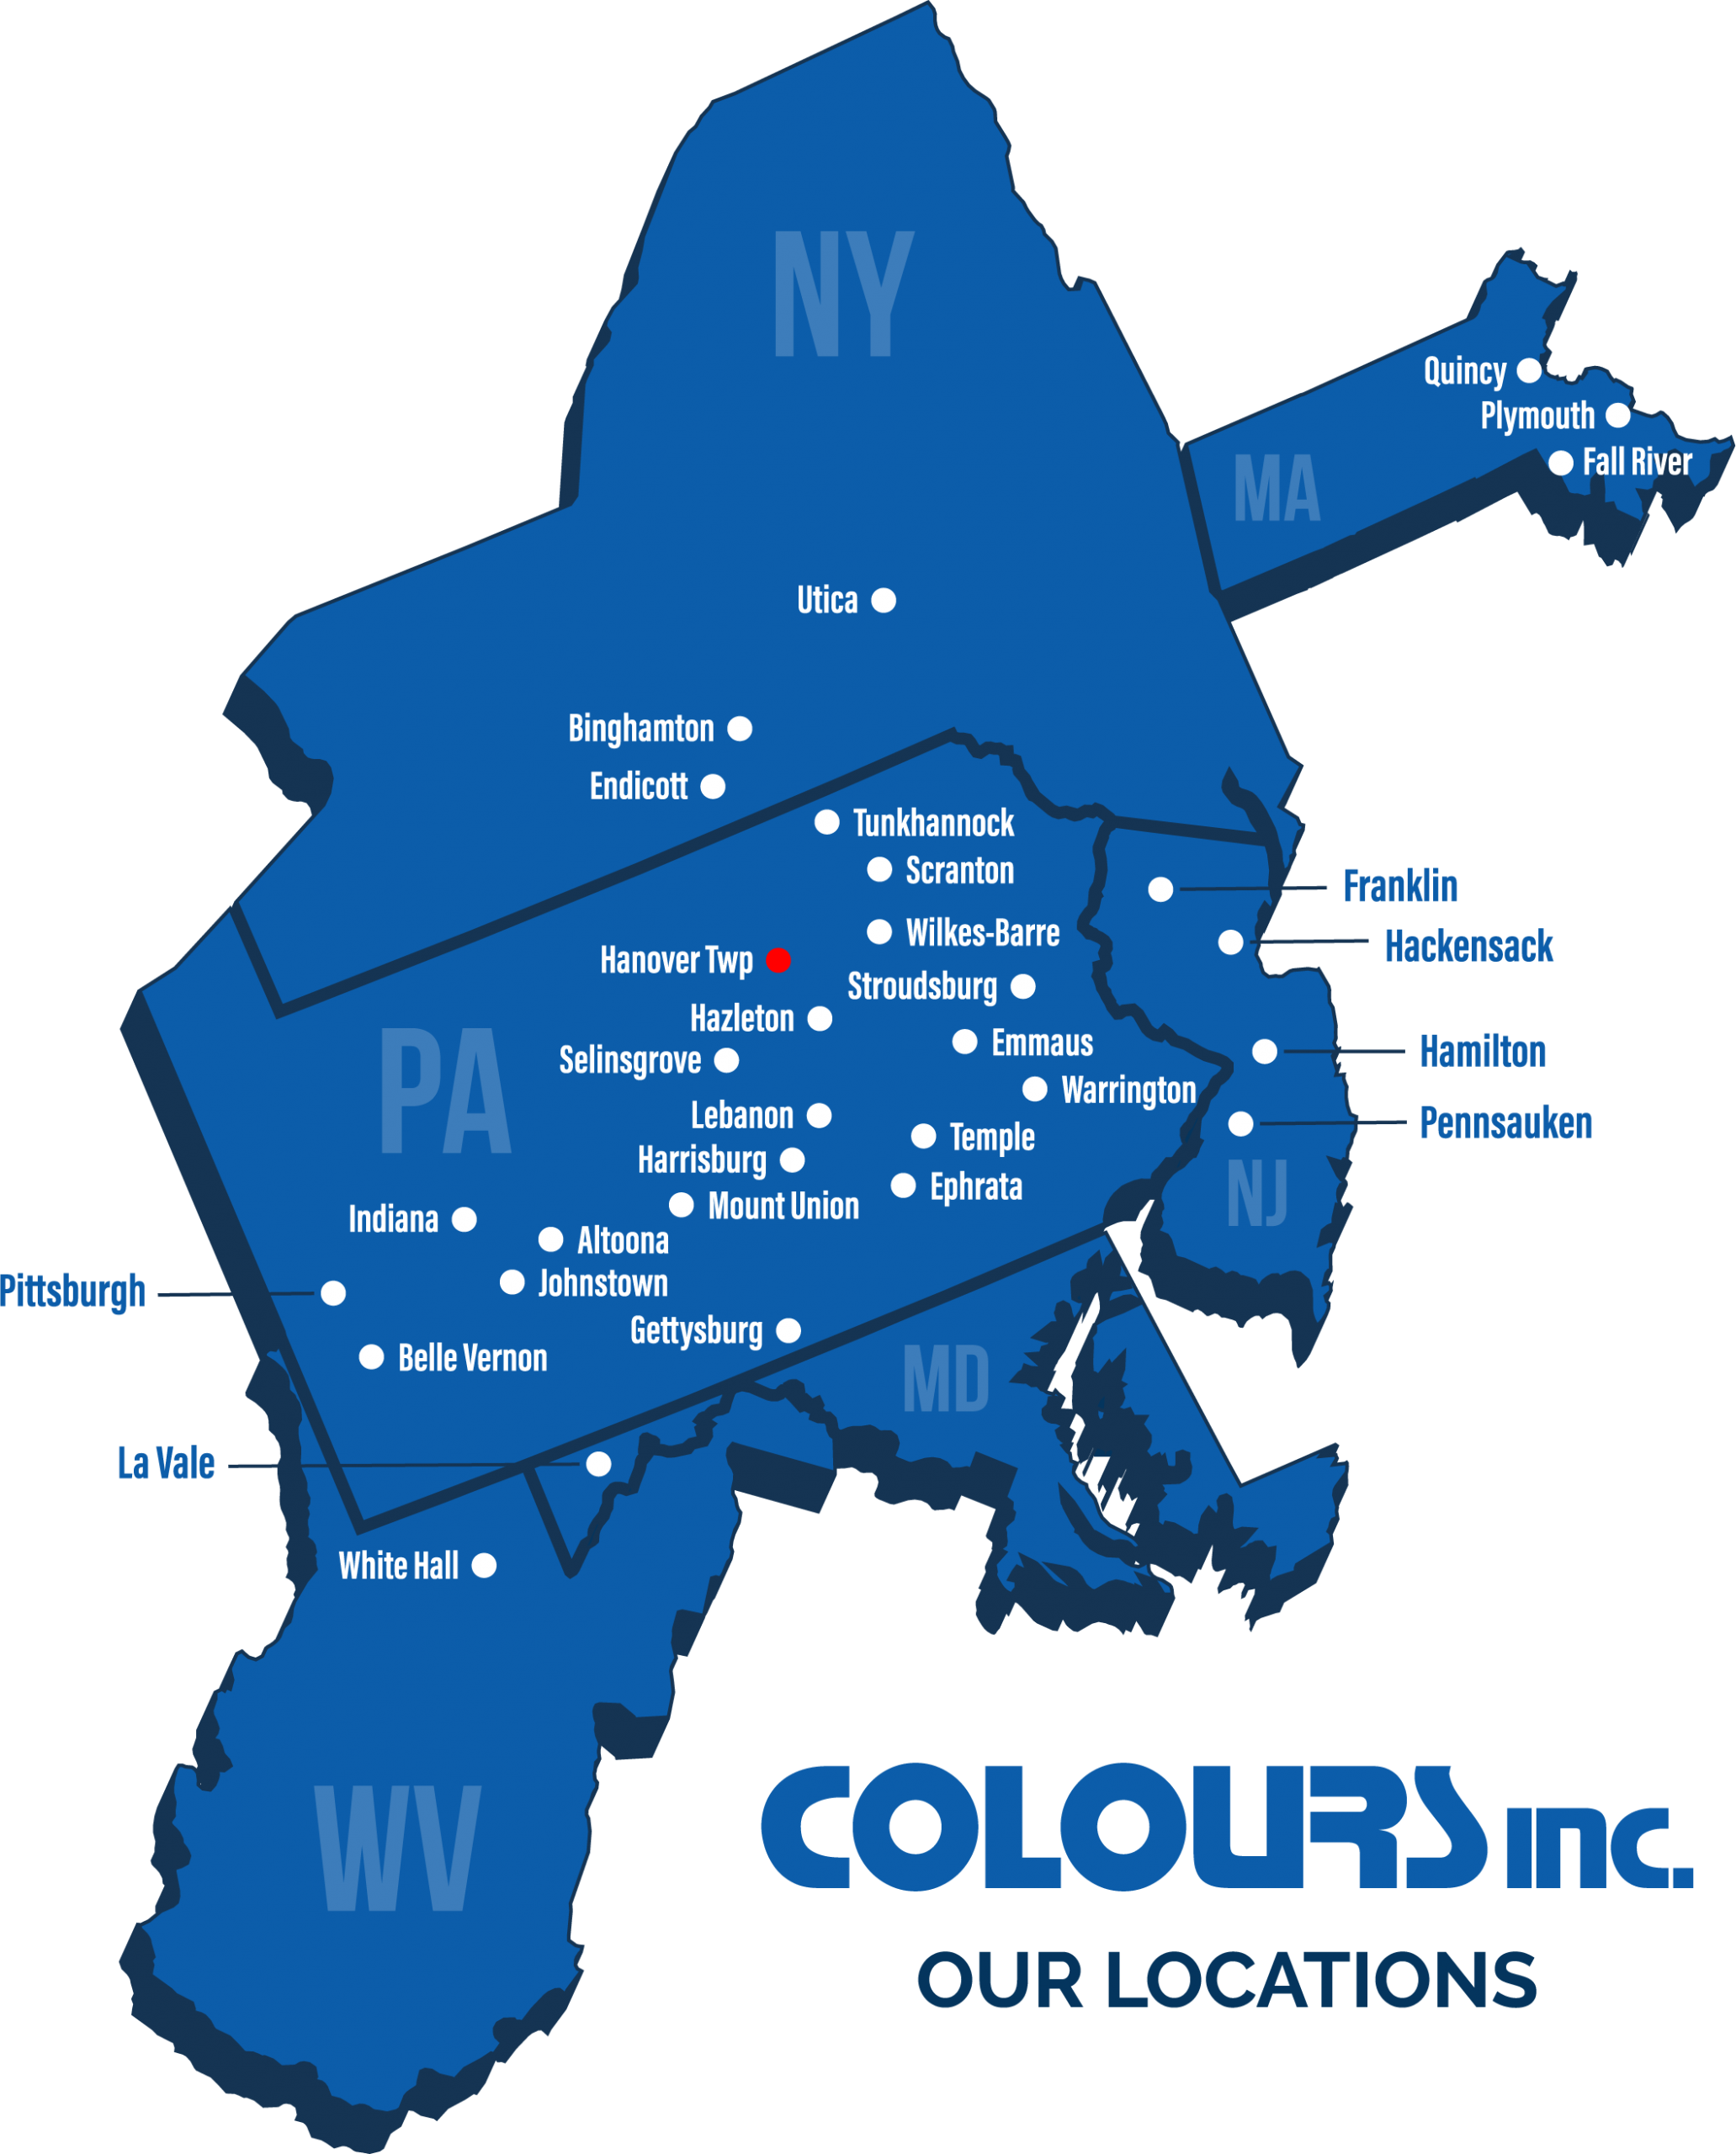 3D Blue Map of Colours Inc Store Locations with plot points for stores